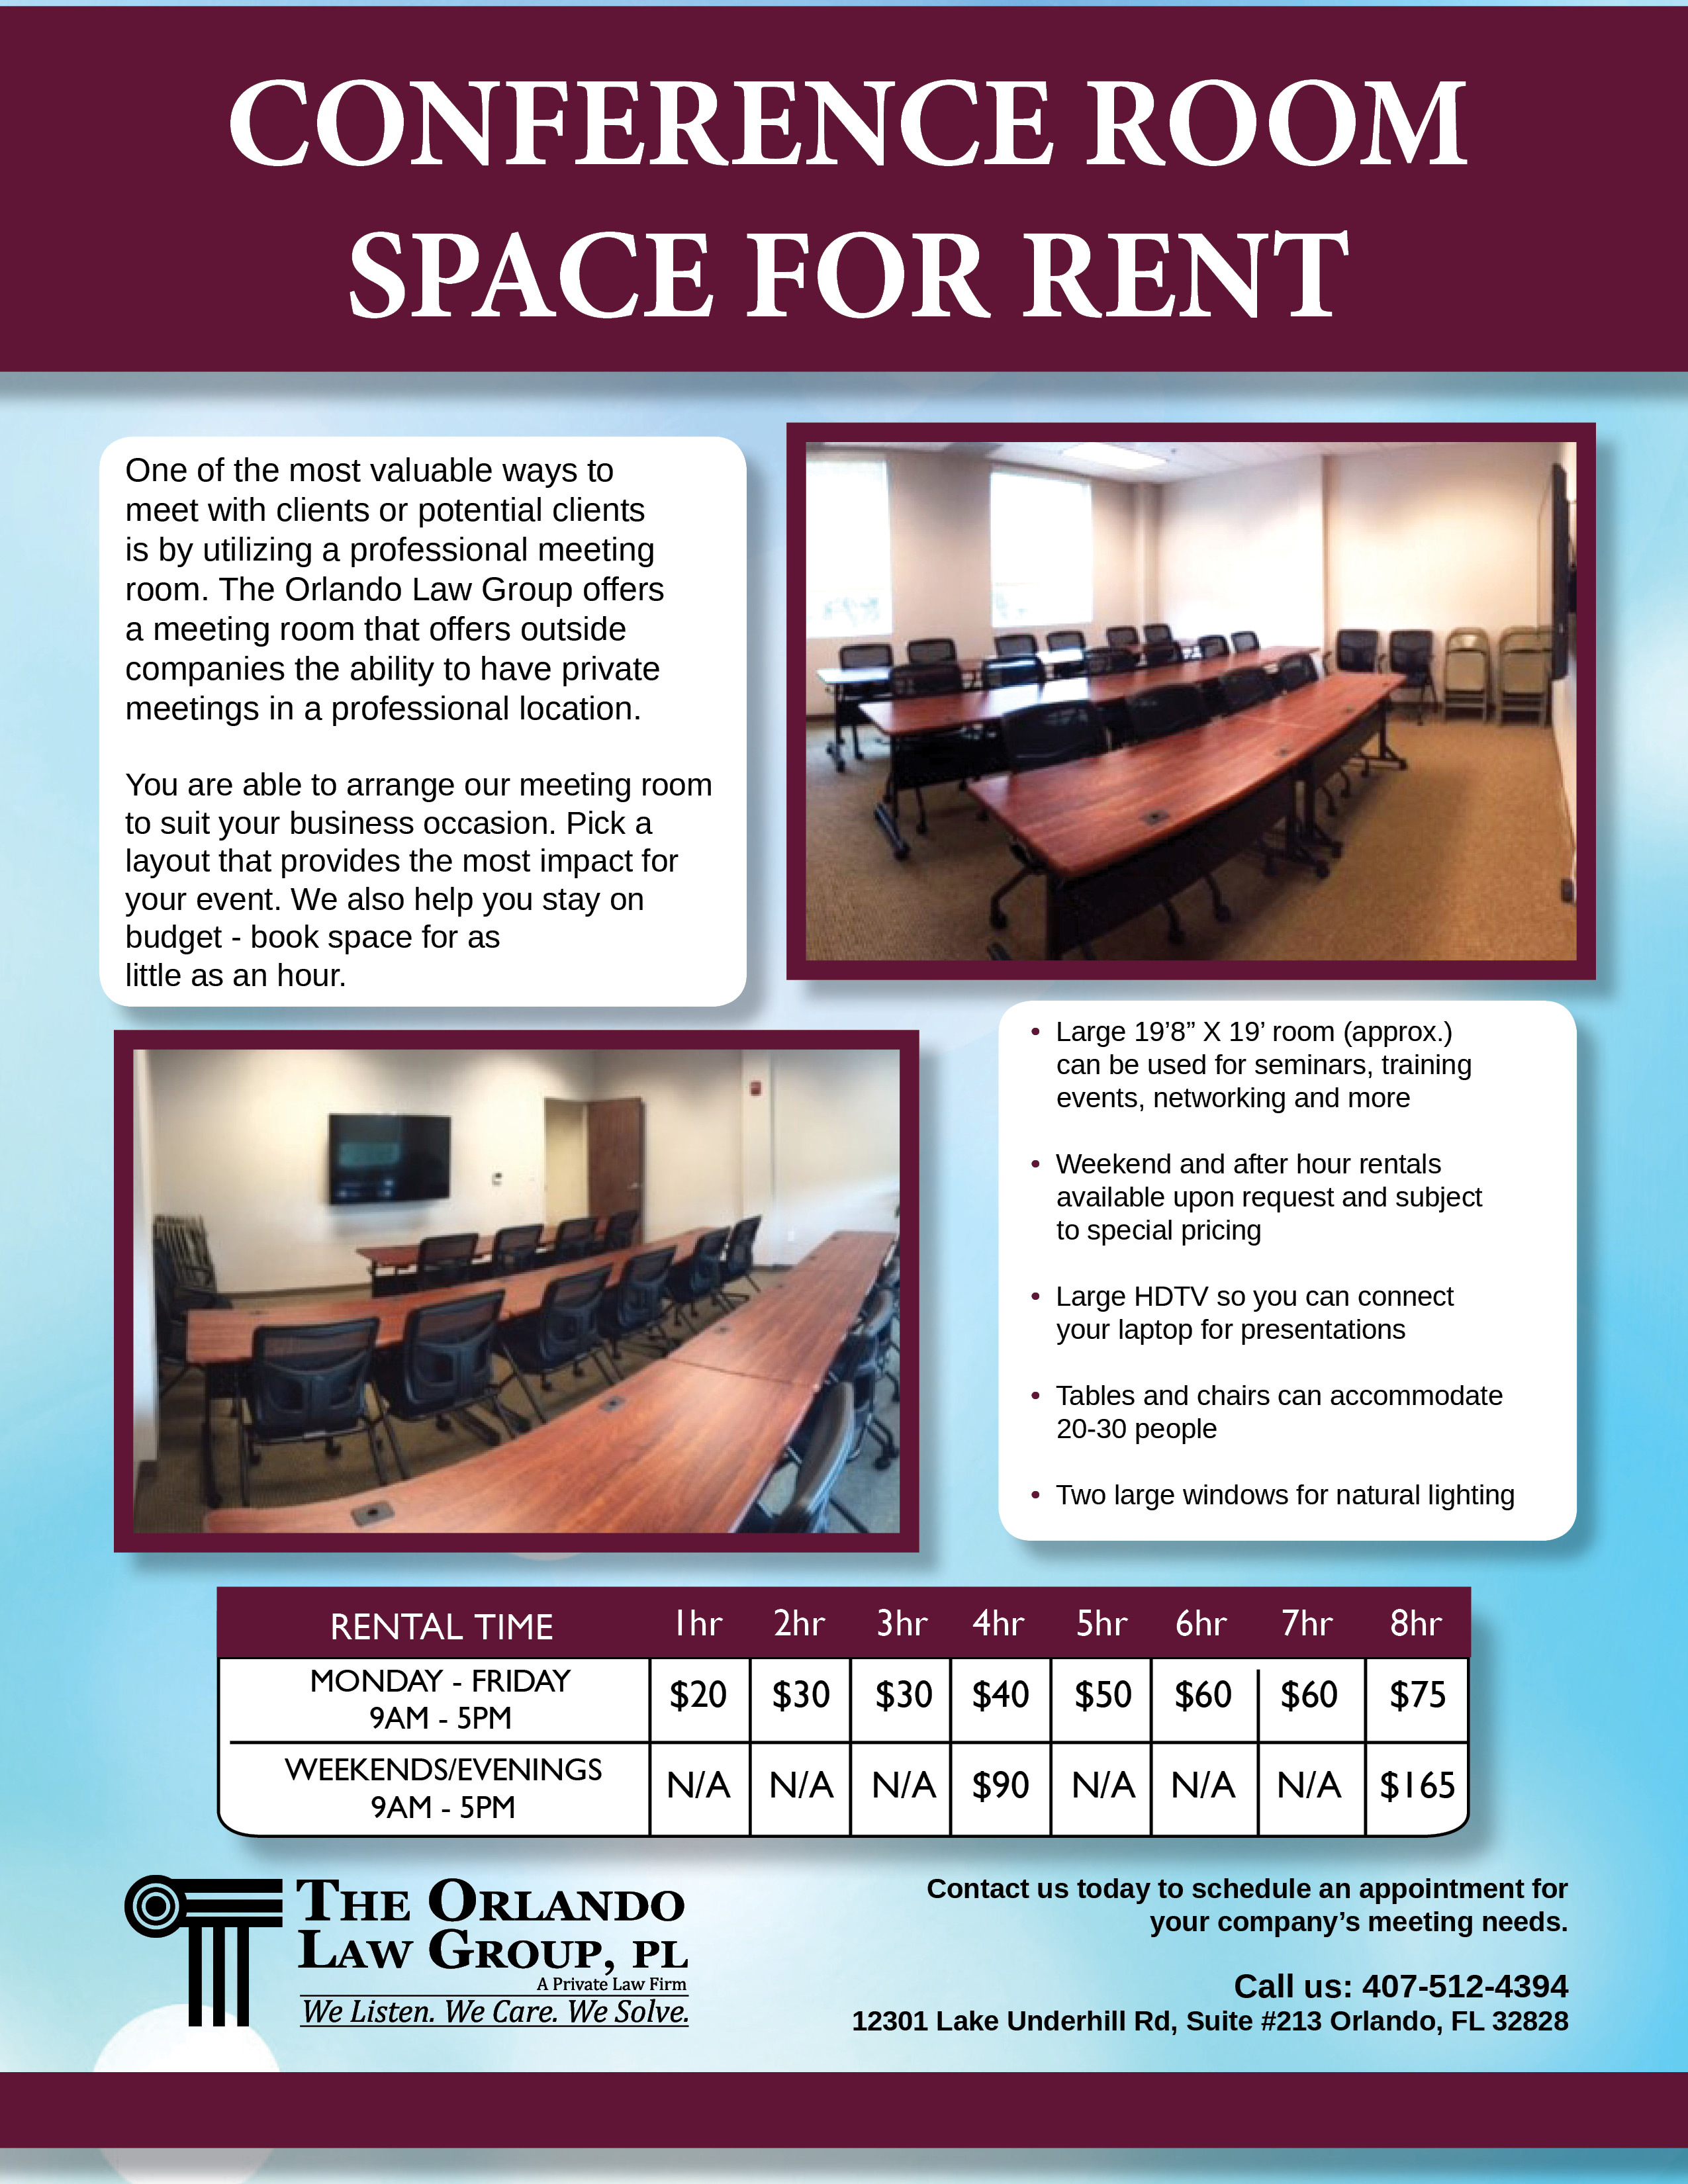 Conference-Room-Space-for-Rent-from-The-Orlando-Law-Group